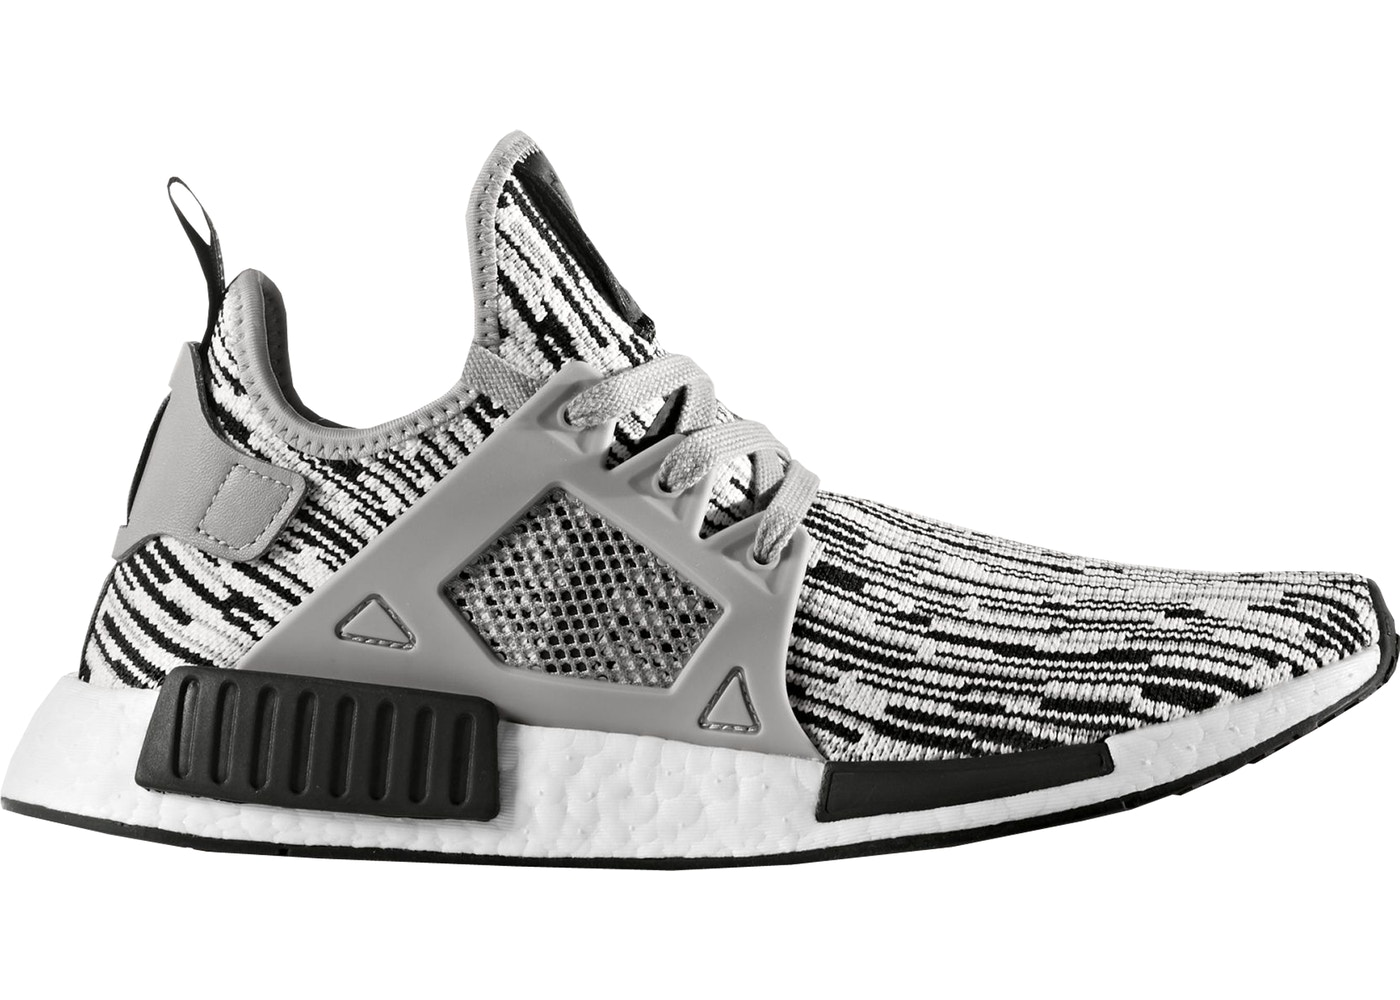 adidas nmd xr1 glitch camo black